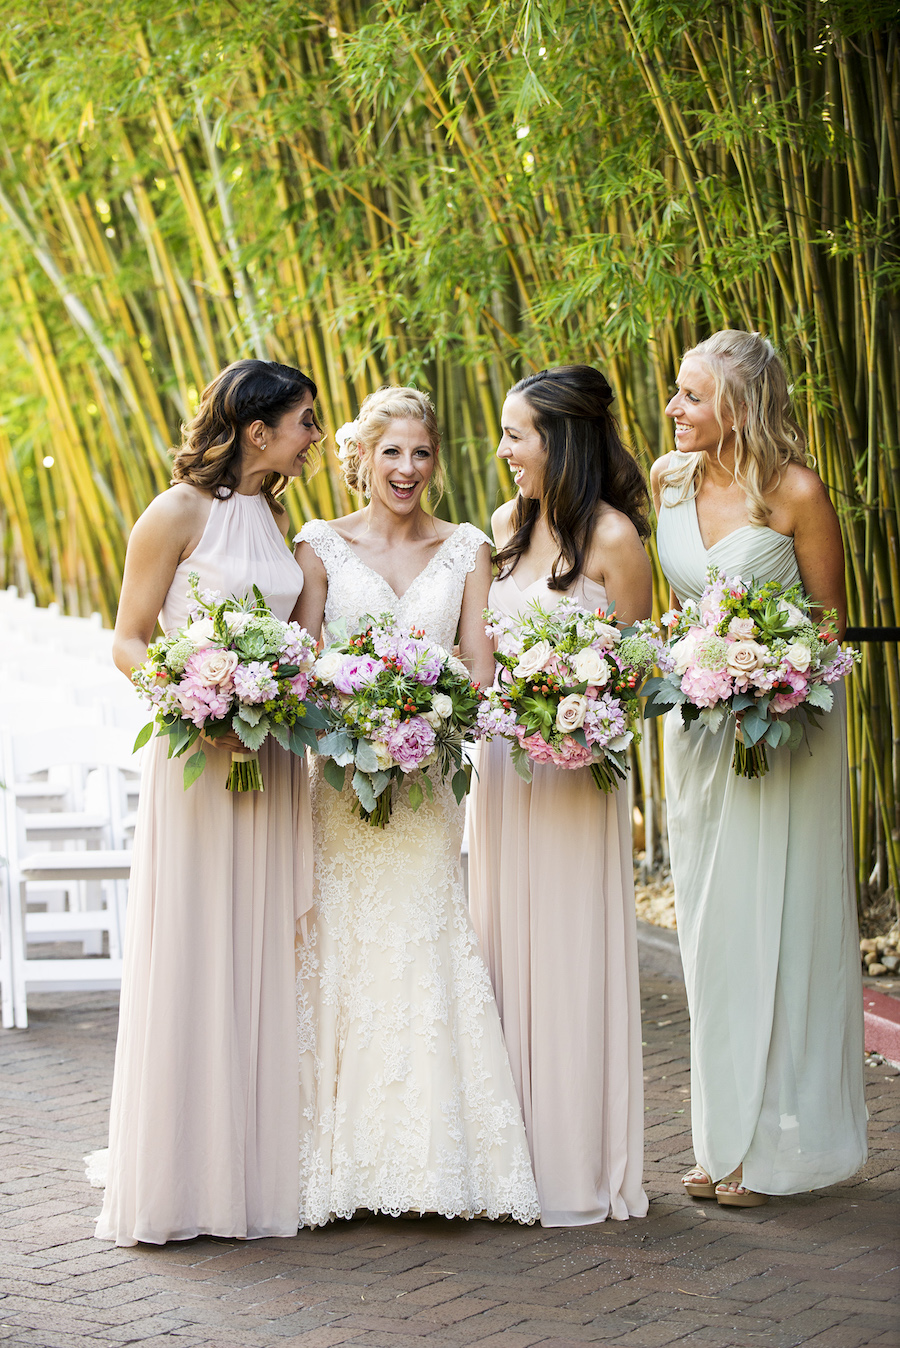 Bride and Bridesmaids Weddin Portriat with Colorful, Pink, Blush, and White Wedding Bouquets and Blush and Mint Green Bridesmaid Dresses